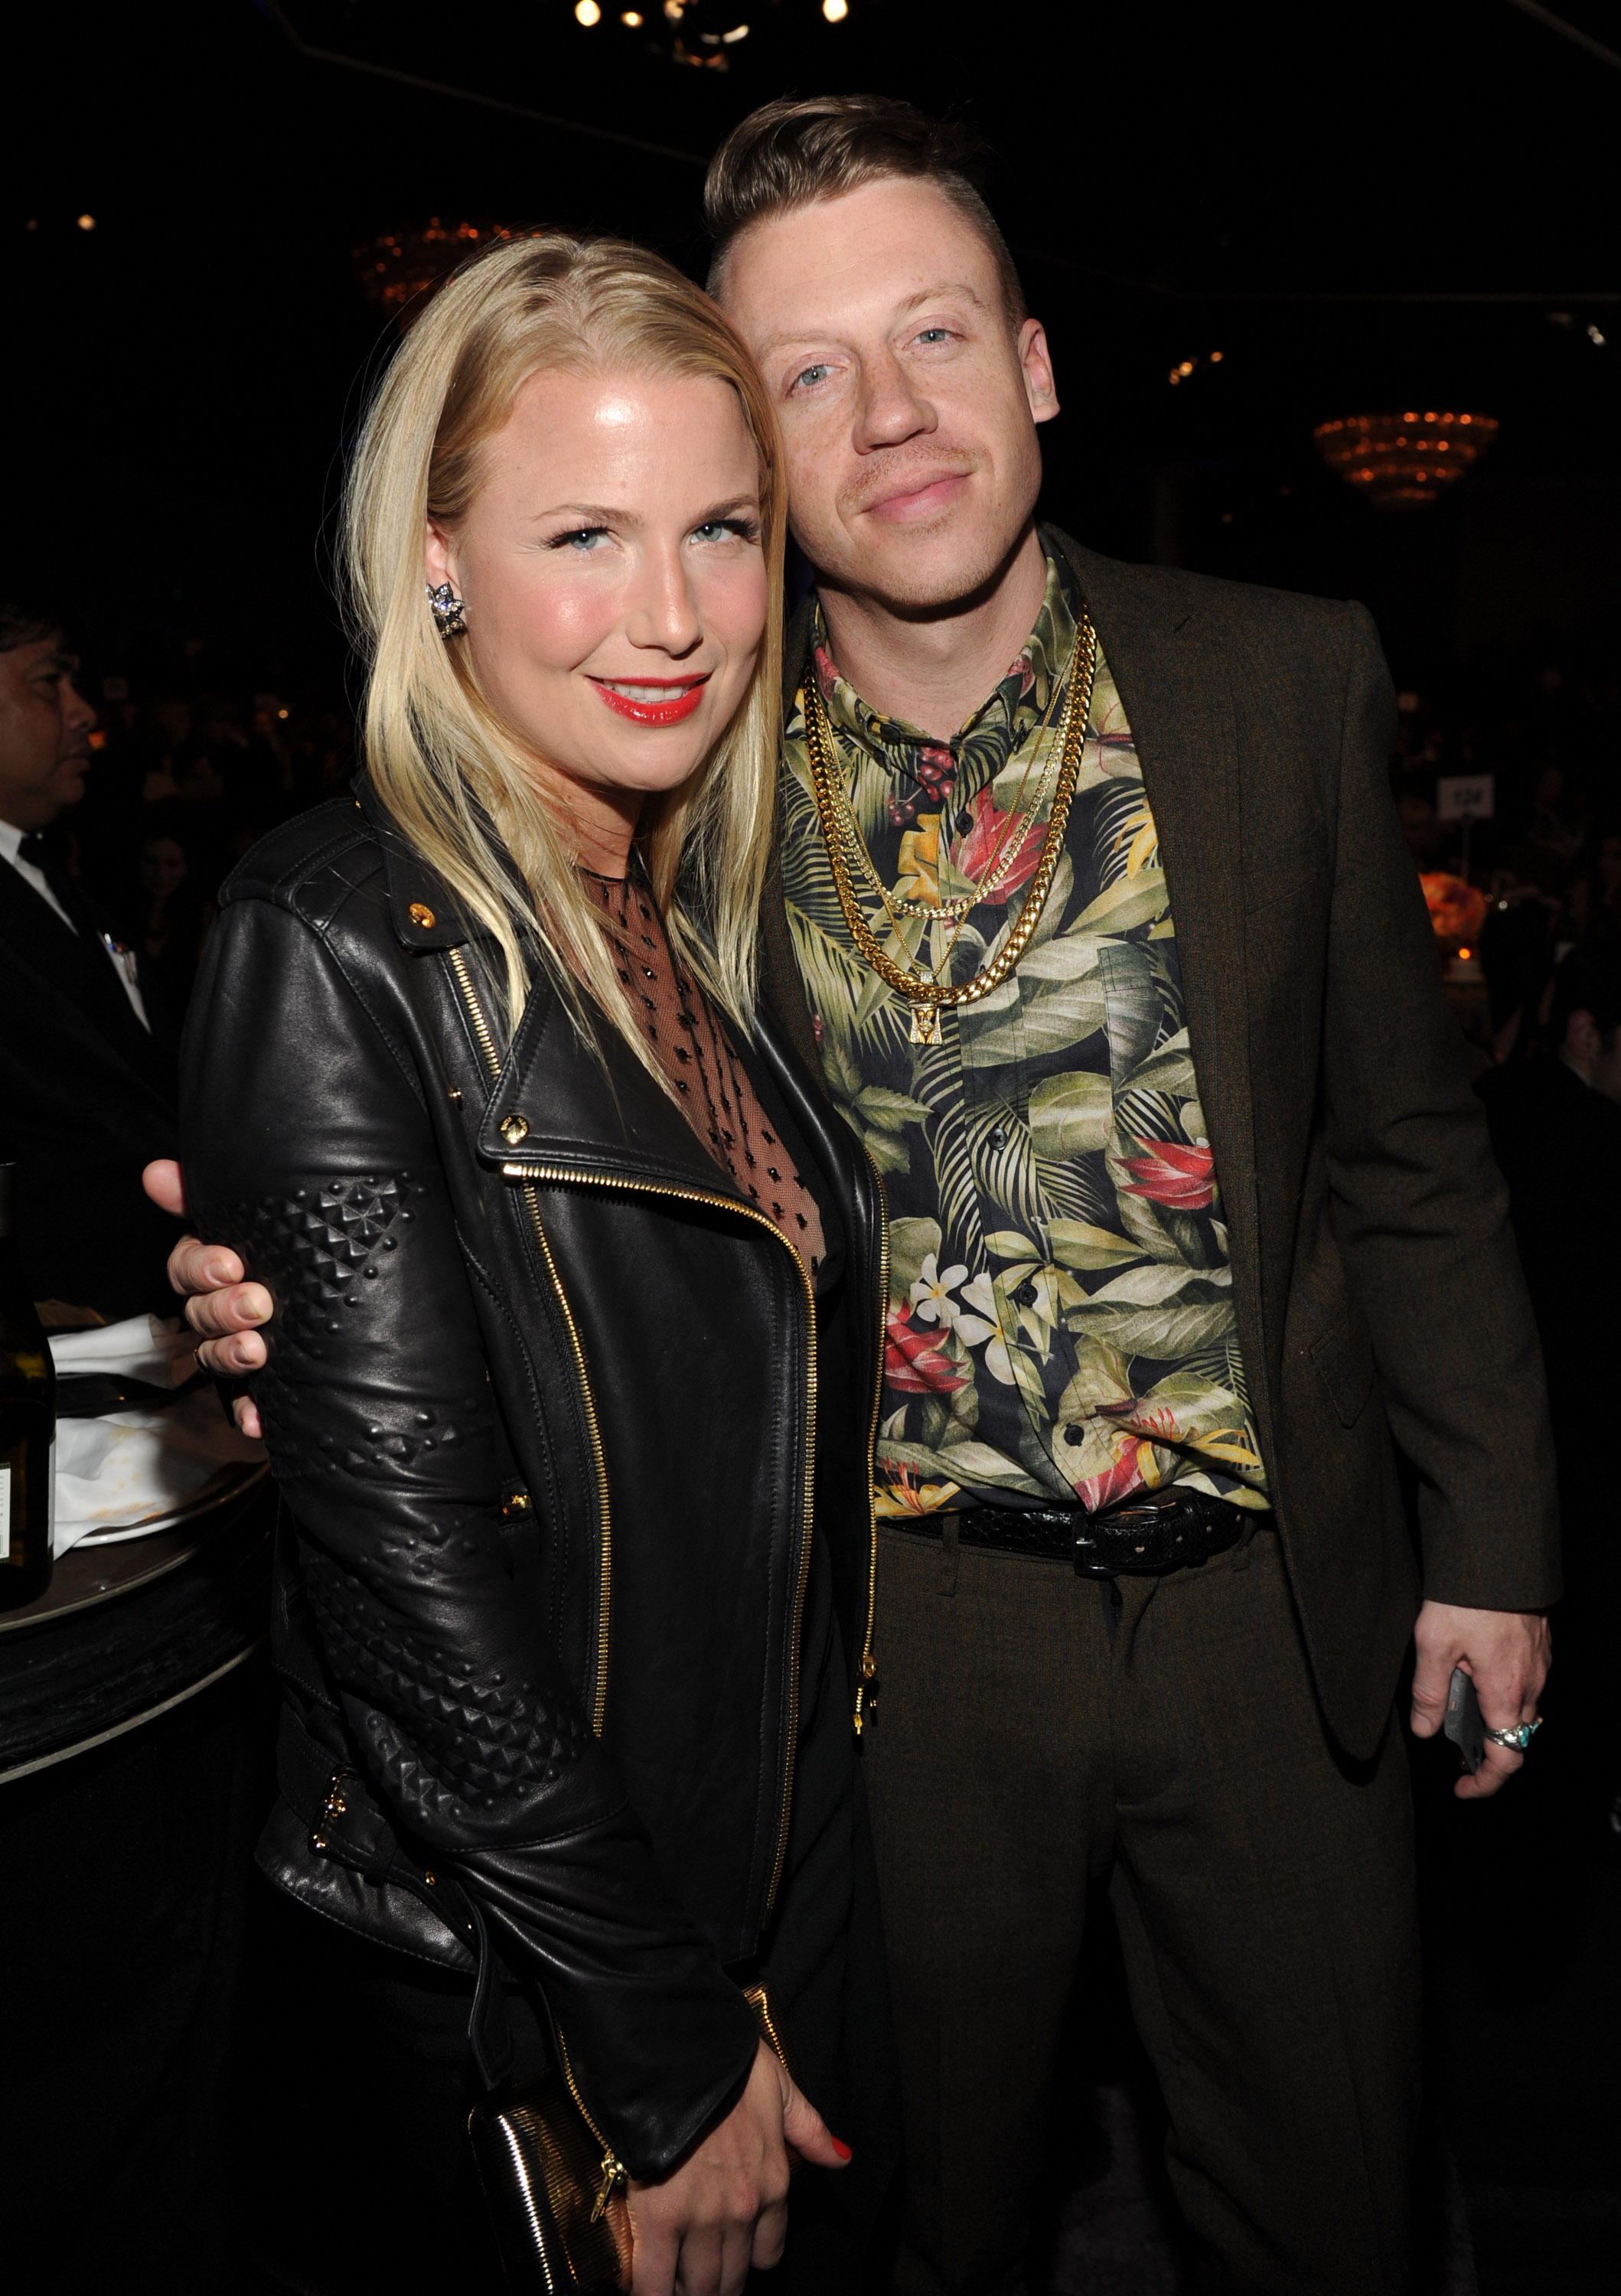 Tricia Davis and Macklemore in Los Angeles during the Pre-Grammy Gala and Salute, Jan. 25, 2014.